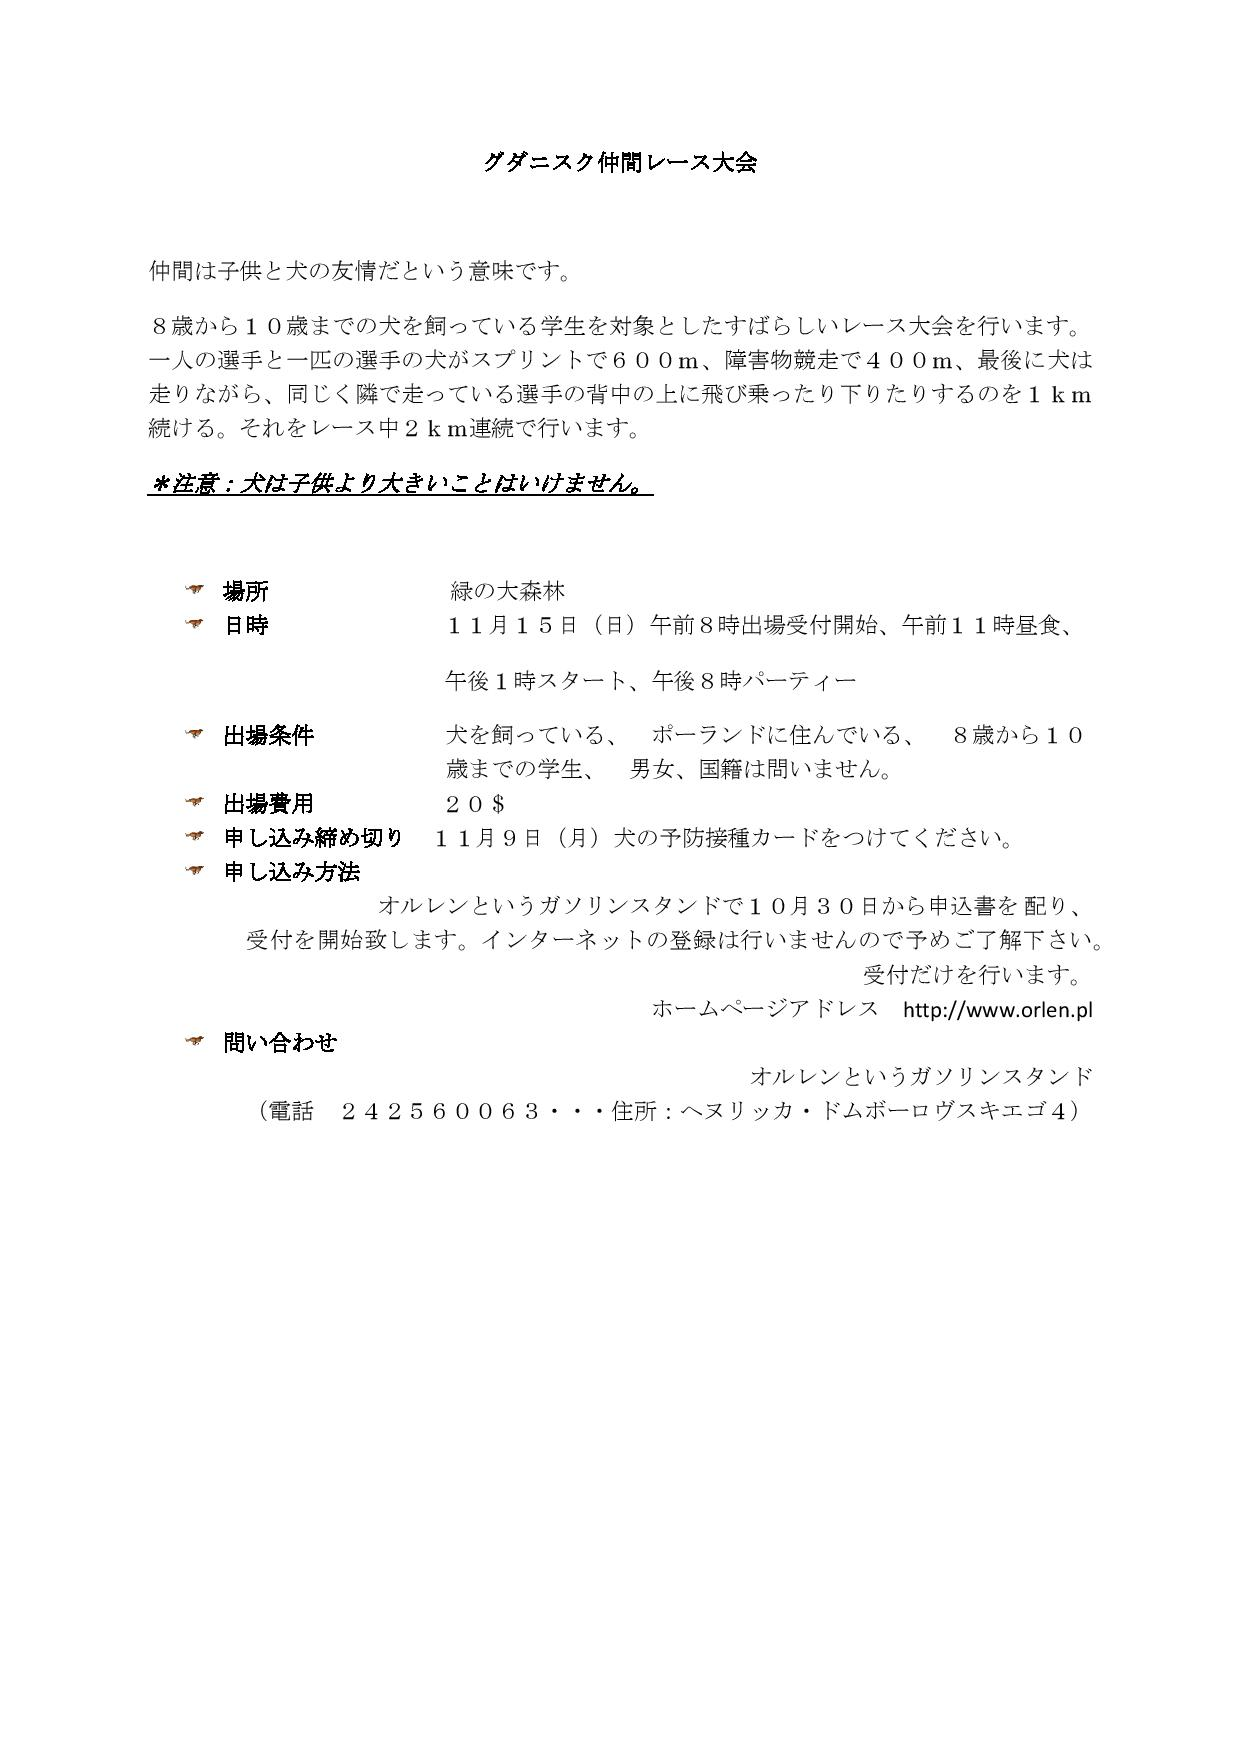 Document-page-001 (9)